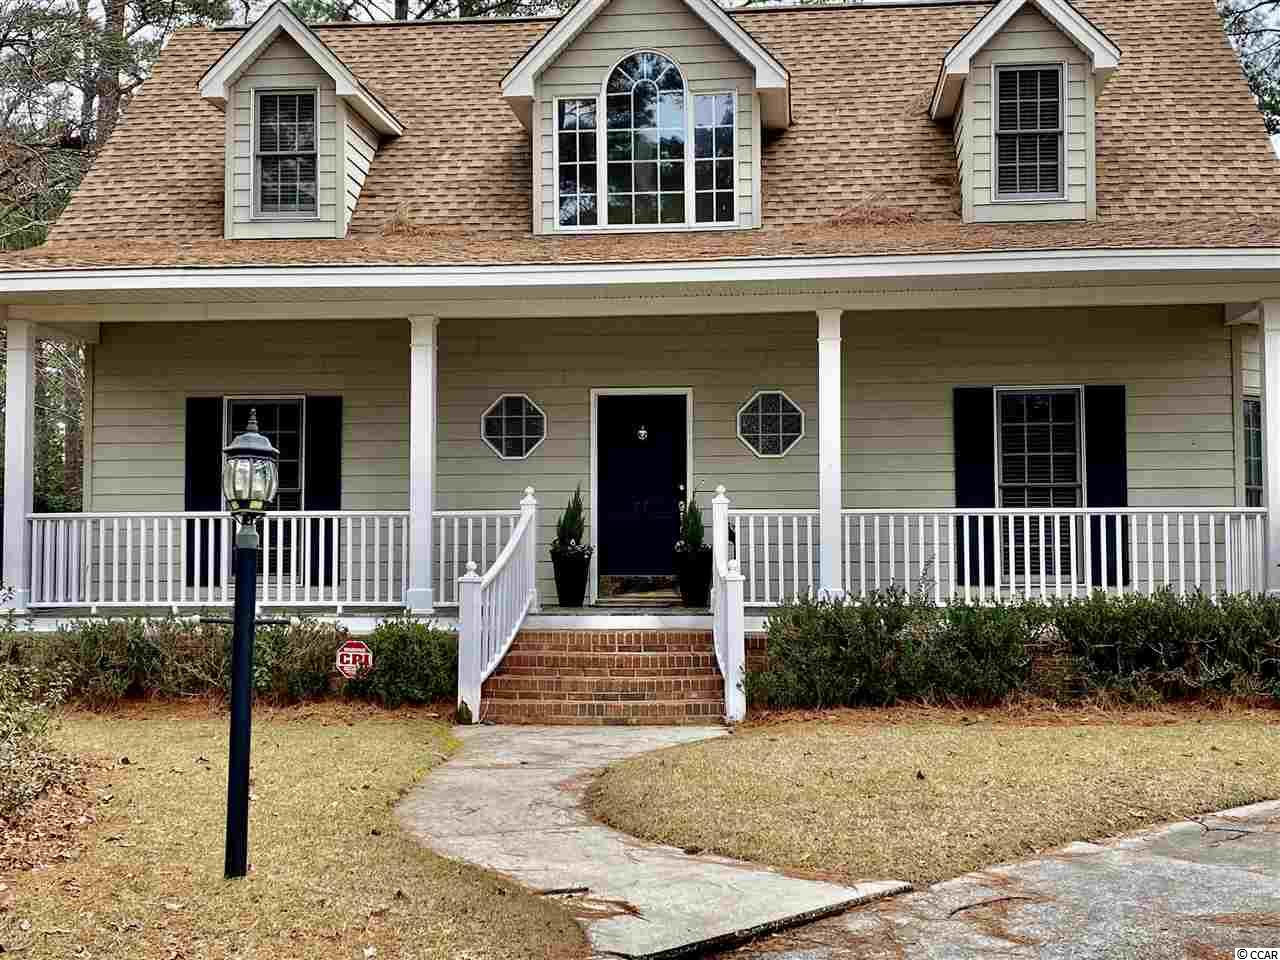 57 Patriot Court is a custom home nestled on the back of quiet cul-de-sac in Wedgefield Plantation. Upon entry, there are cathedral ceilings in foyer and great room. The oversized master suite is downstairs and has beautiful natural light flowing through from the adjoining sunroom. The master bath has a large garden tub and double vanities. The master closet is spacious with double bars and compartments for shoes. The sunroom overlooks the inground pool, patio, deck, and fenced backyard. The great room has a gas fireplace and custom built-ins. This homes provides multiple closets and storage areas. The kitchen has a new gas range, refrigerator, and solid surface countertops. The formal dining is charming with room for a large table. There is a designated laundry room that leads to the garage. There is a 2 car garage with shelving. The upstairs has two bedrooms with double closets in each and a full bathroom. This home is cozy and is perfect for entertaining.